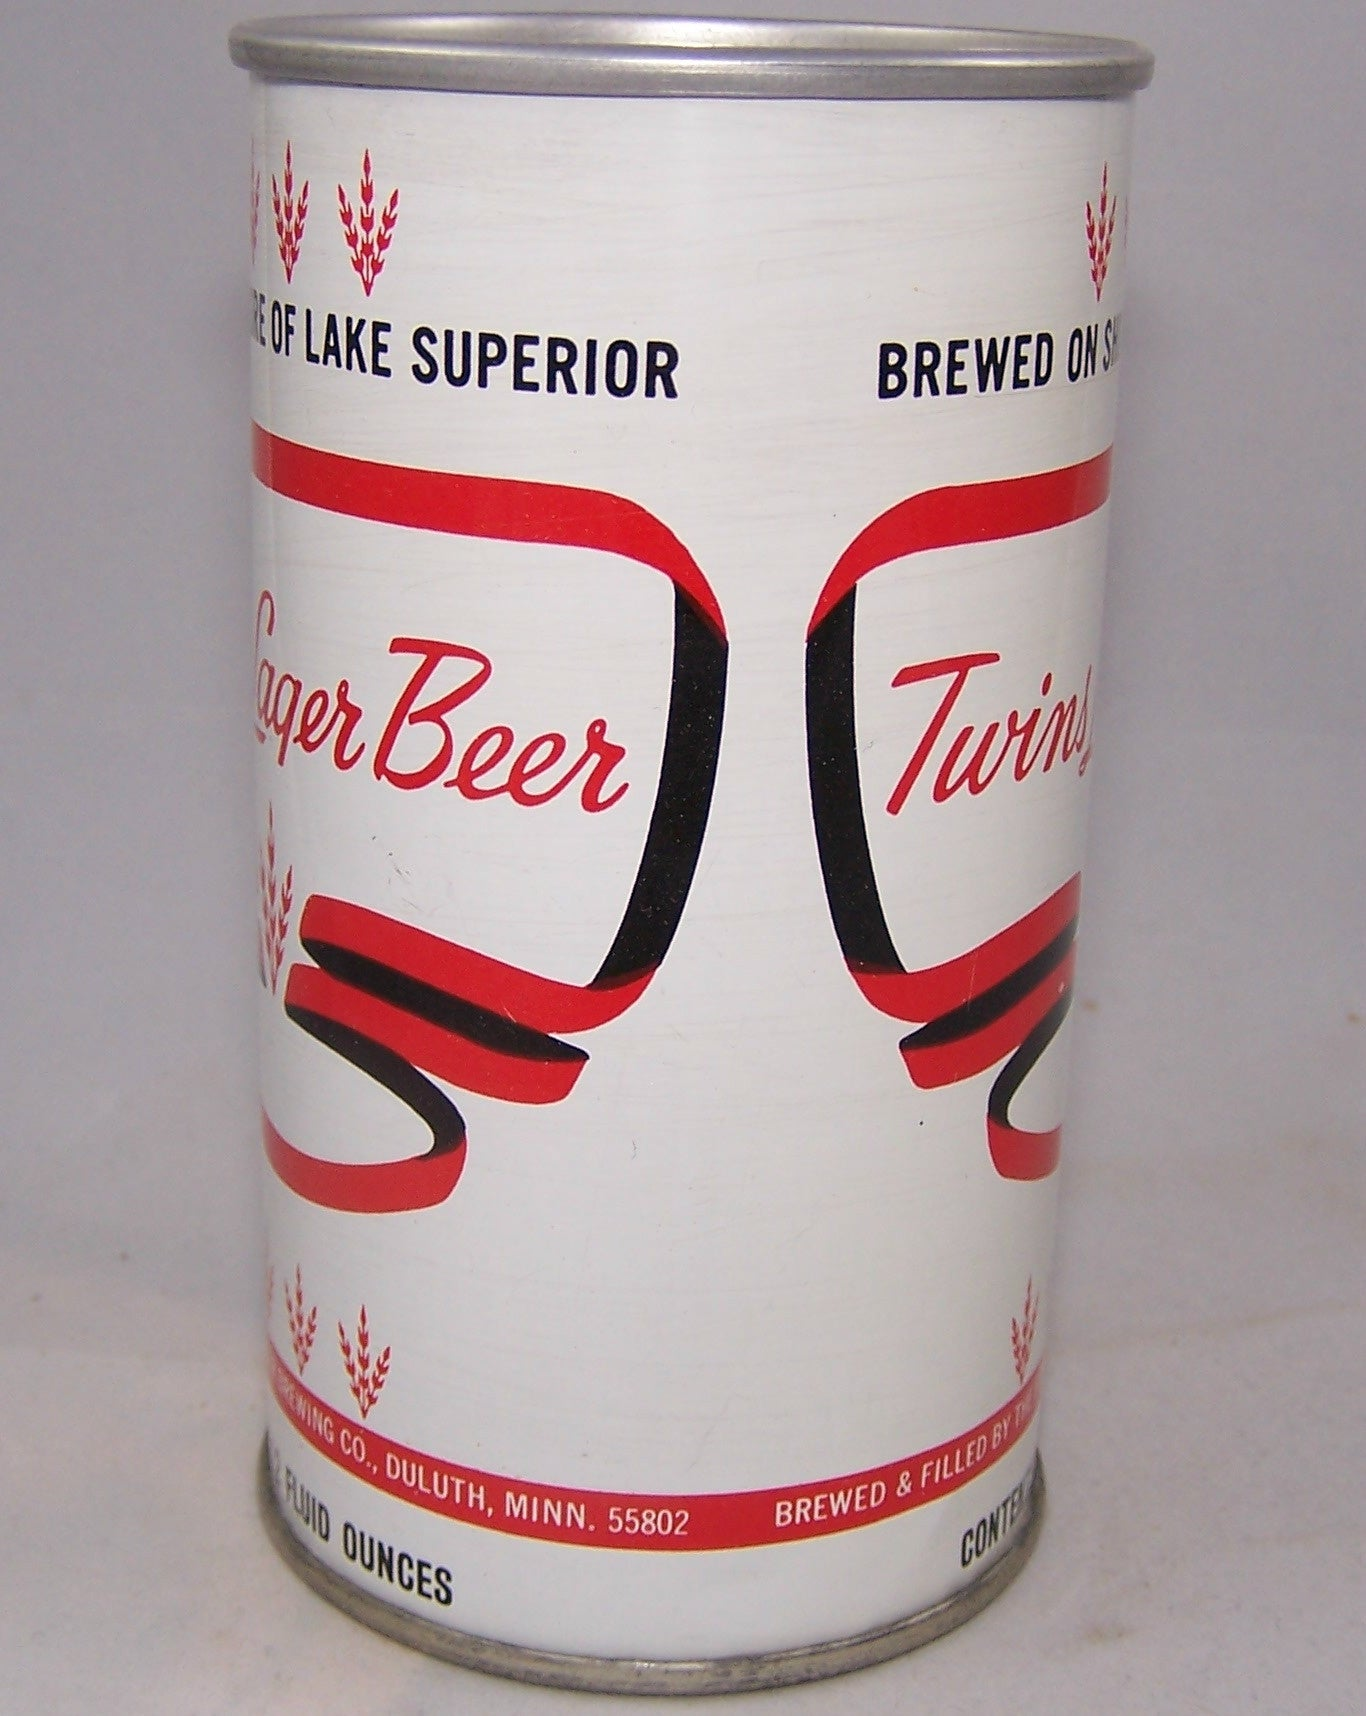 Twins Lager Beer, USBC II 132-11, Grade A1+ Sold on 10/28/15